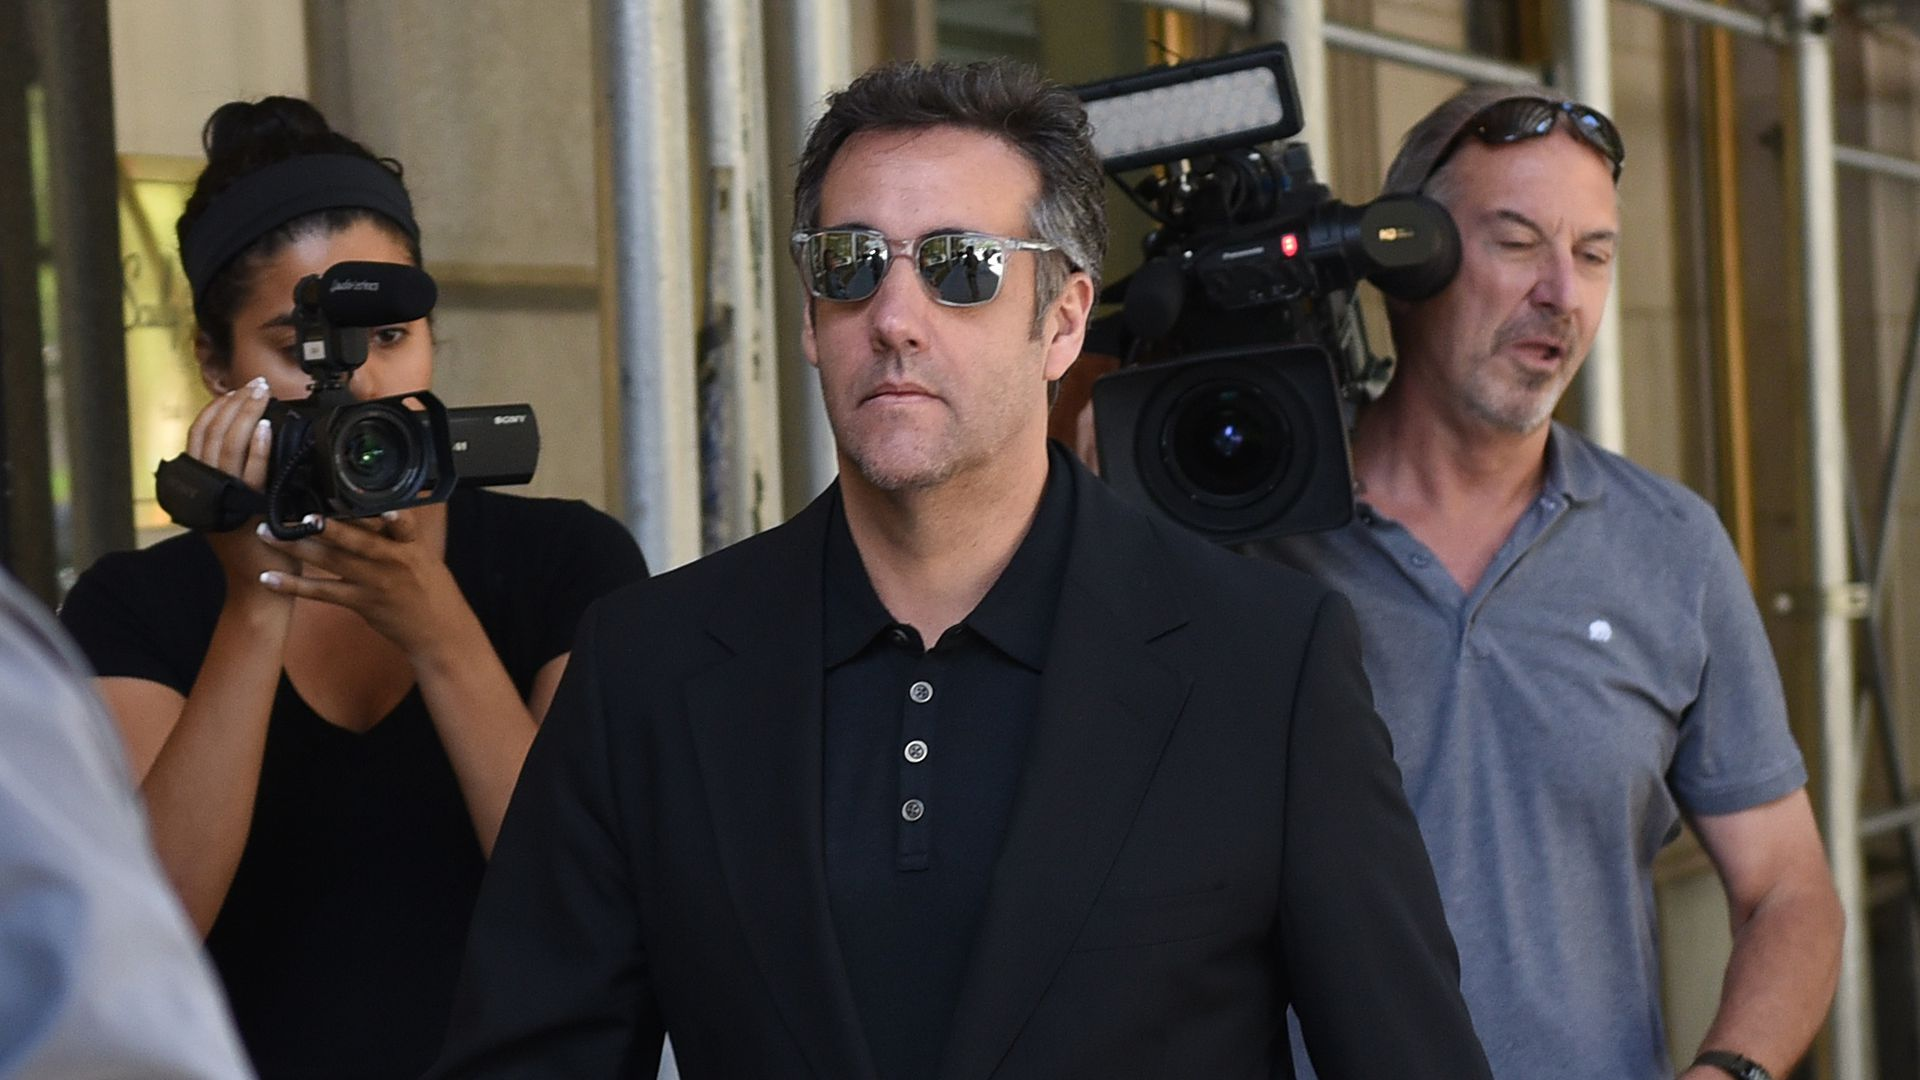 Michael Cohen walks down a sidewalk in sunglasses